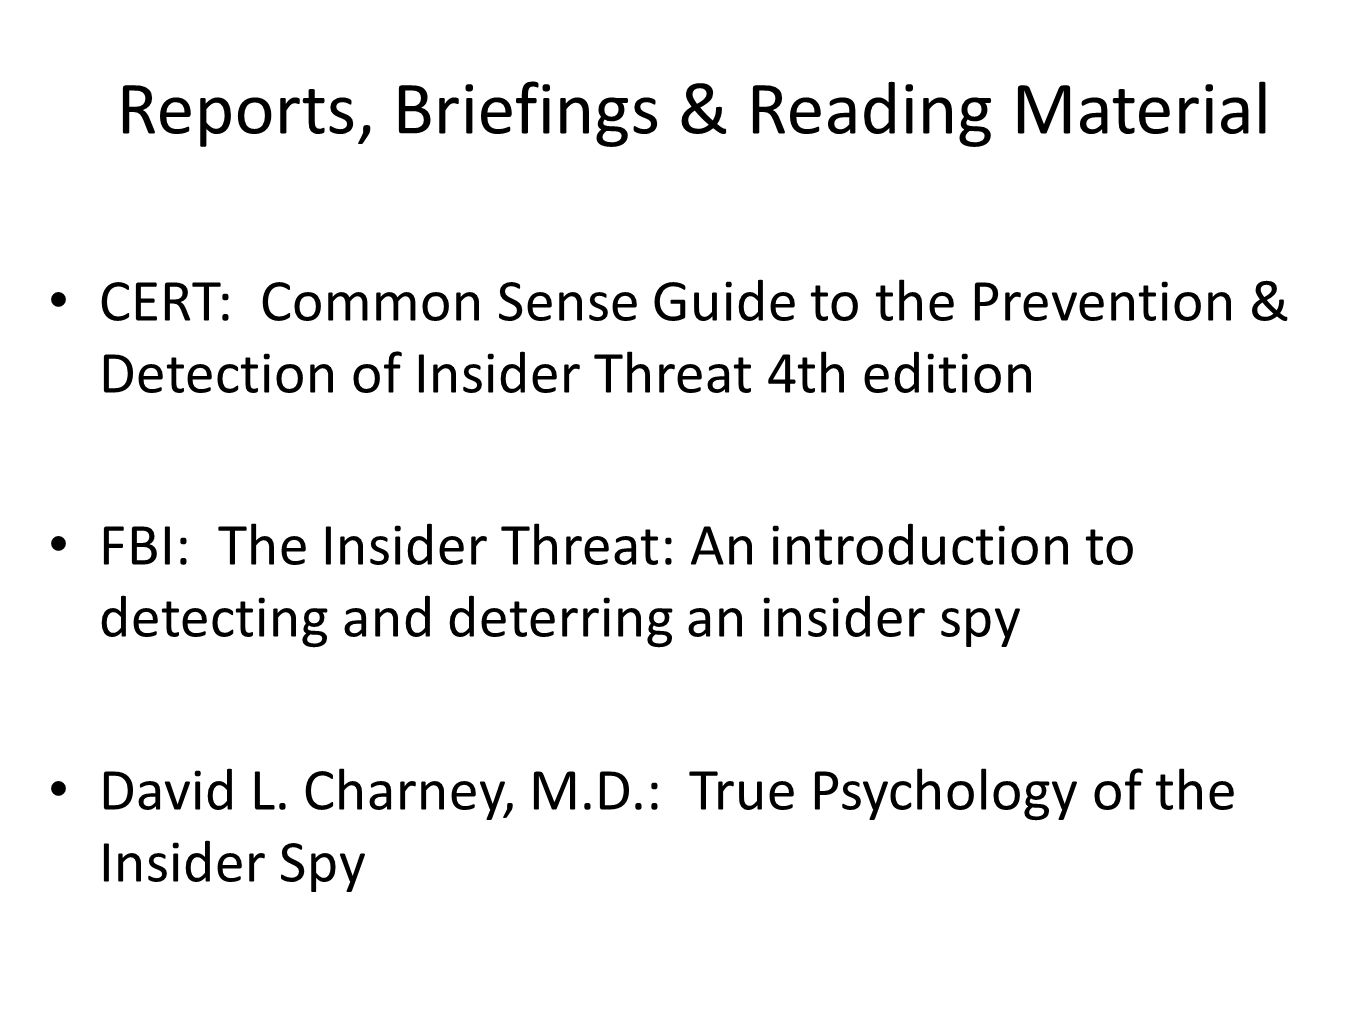 Reports, Briefings & Reading Material CERT: Common Sense Guide to the Prevention & Detection of Insider Threat 4th edition FBI: The Insider Threat: An introduction to detecting and deterring an insider spy David L.